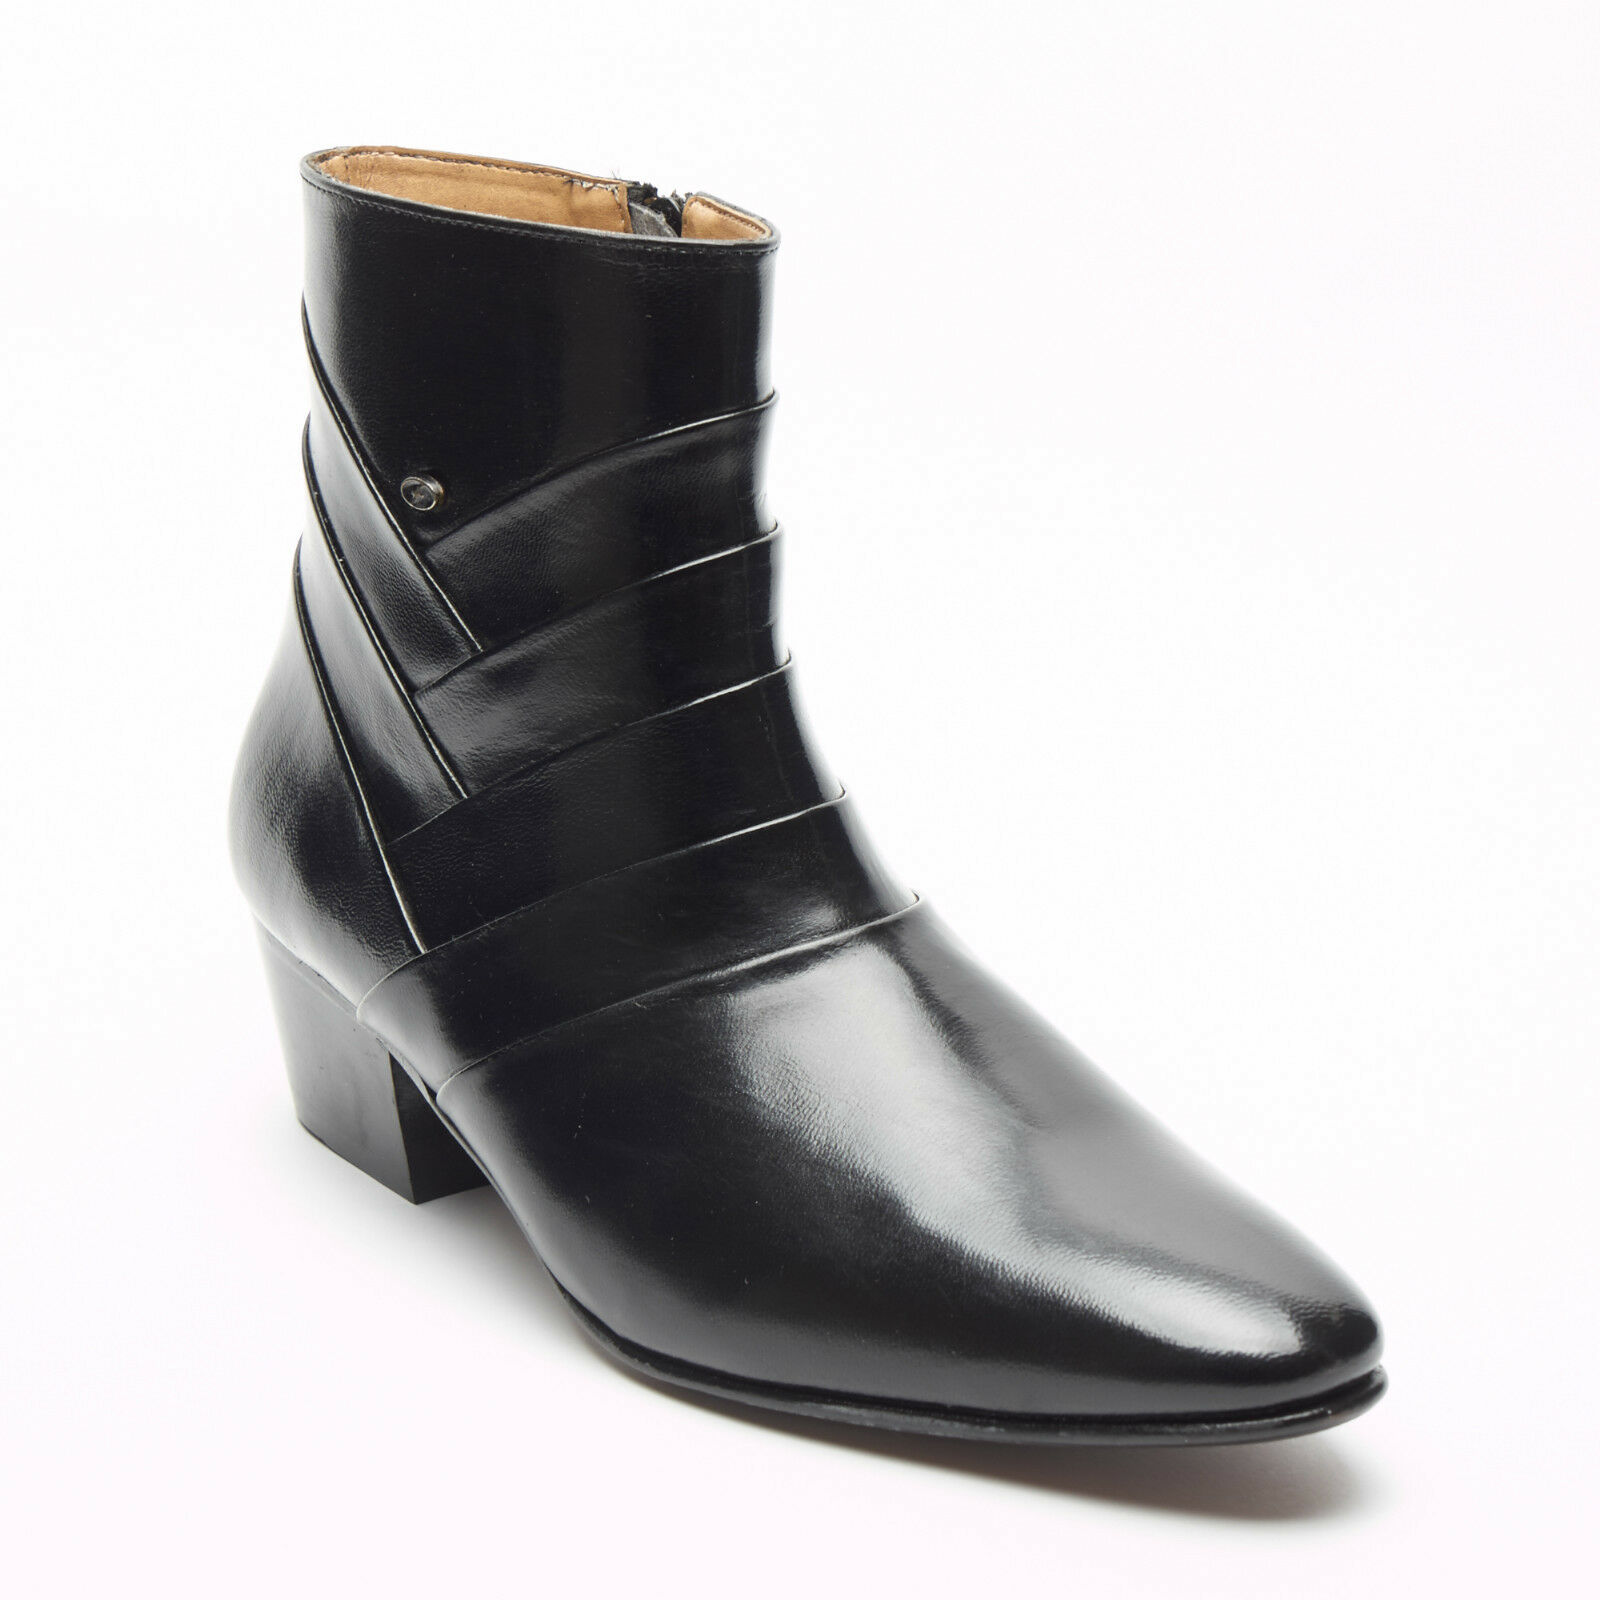 MENS FORMAL LUCINI LEATHER CUBAN HEEL BLACK ANKLE BOOTS,ZIP UP,SIZES 6-11 26288